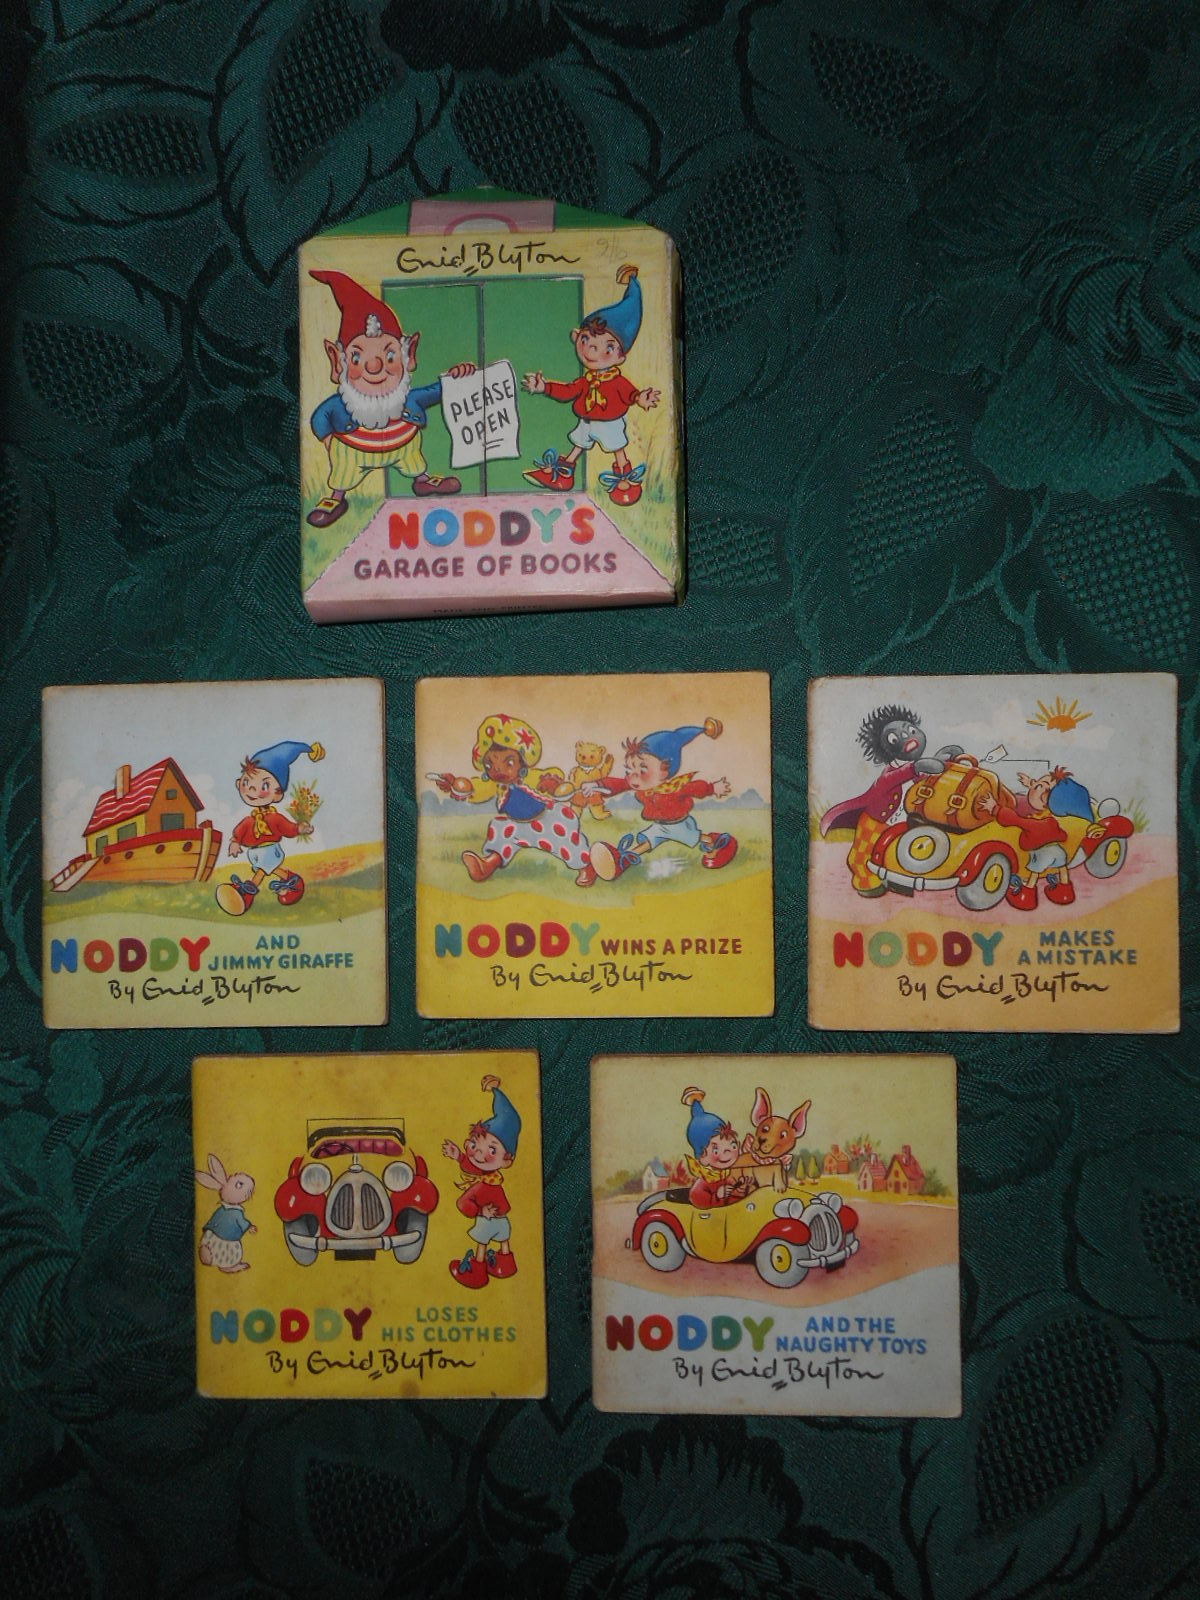 Image for Noddy's Garage of Books. Garage 'Box' Containing 5 Books:- Noddy Loses His Clothes; Noddy and the Naughty Toys; Noddy Makes a Mistake; Noddy Wins a Prize; Noddy and Jimmy Giraffe